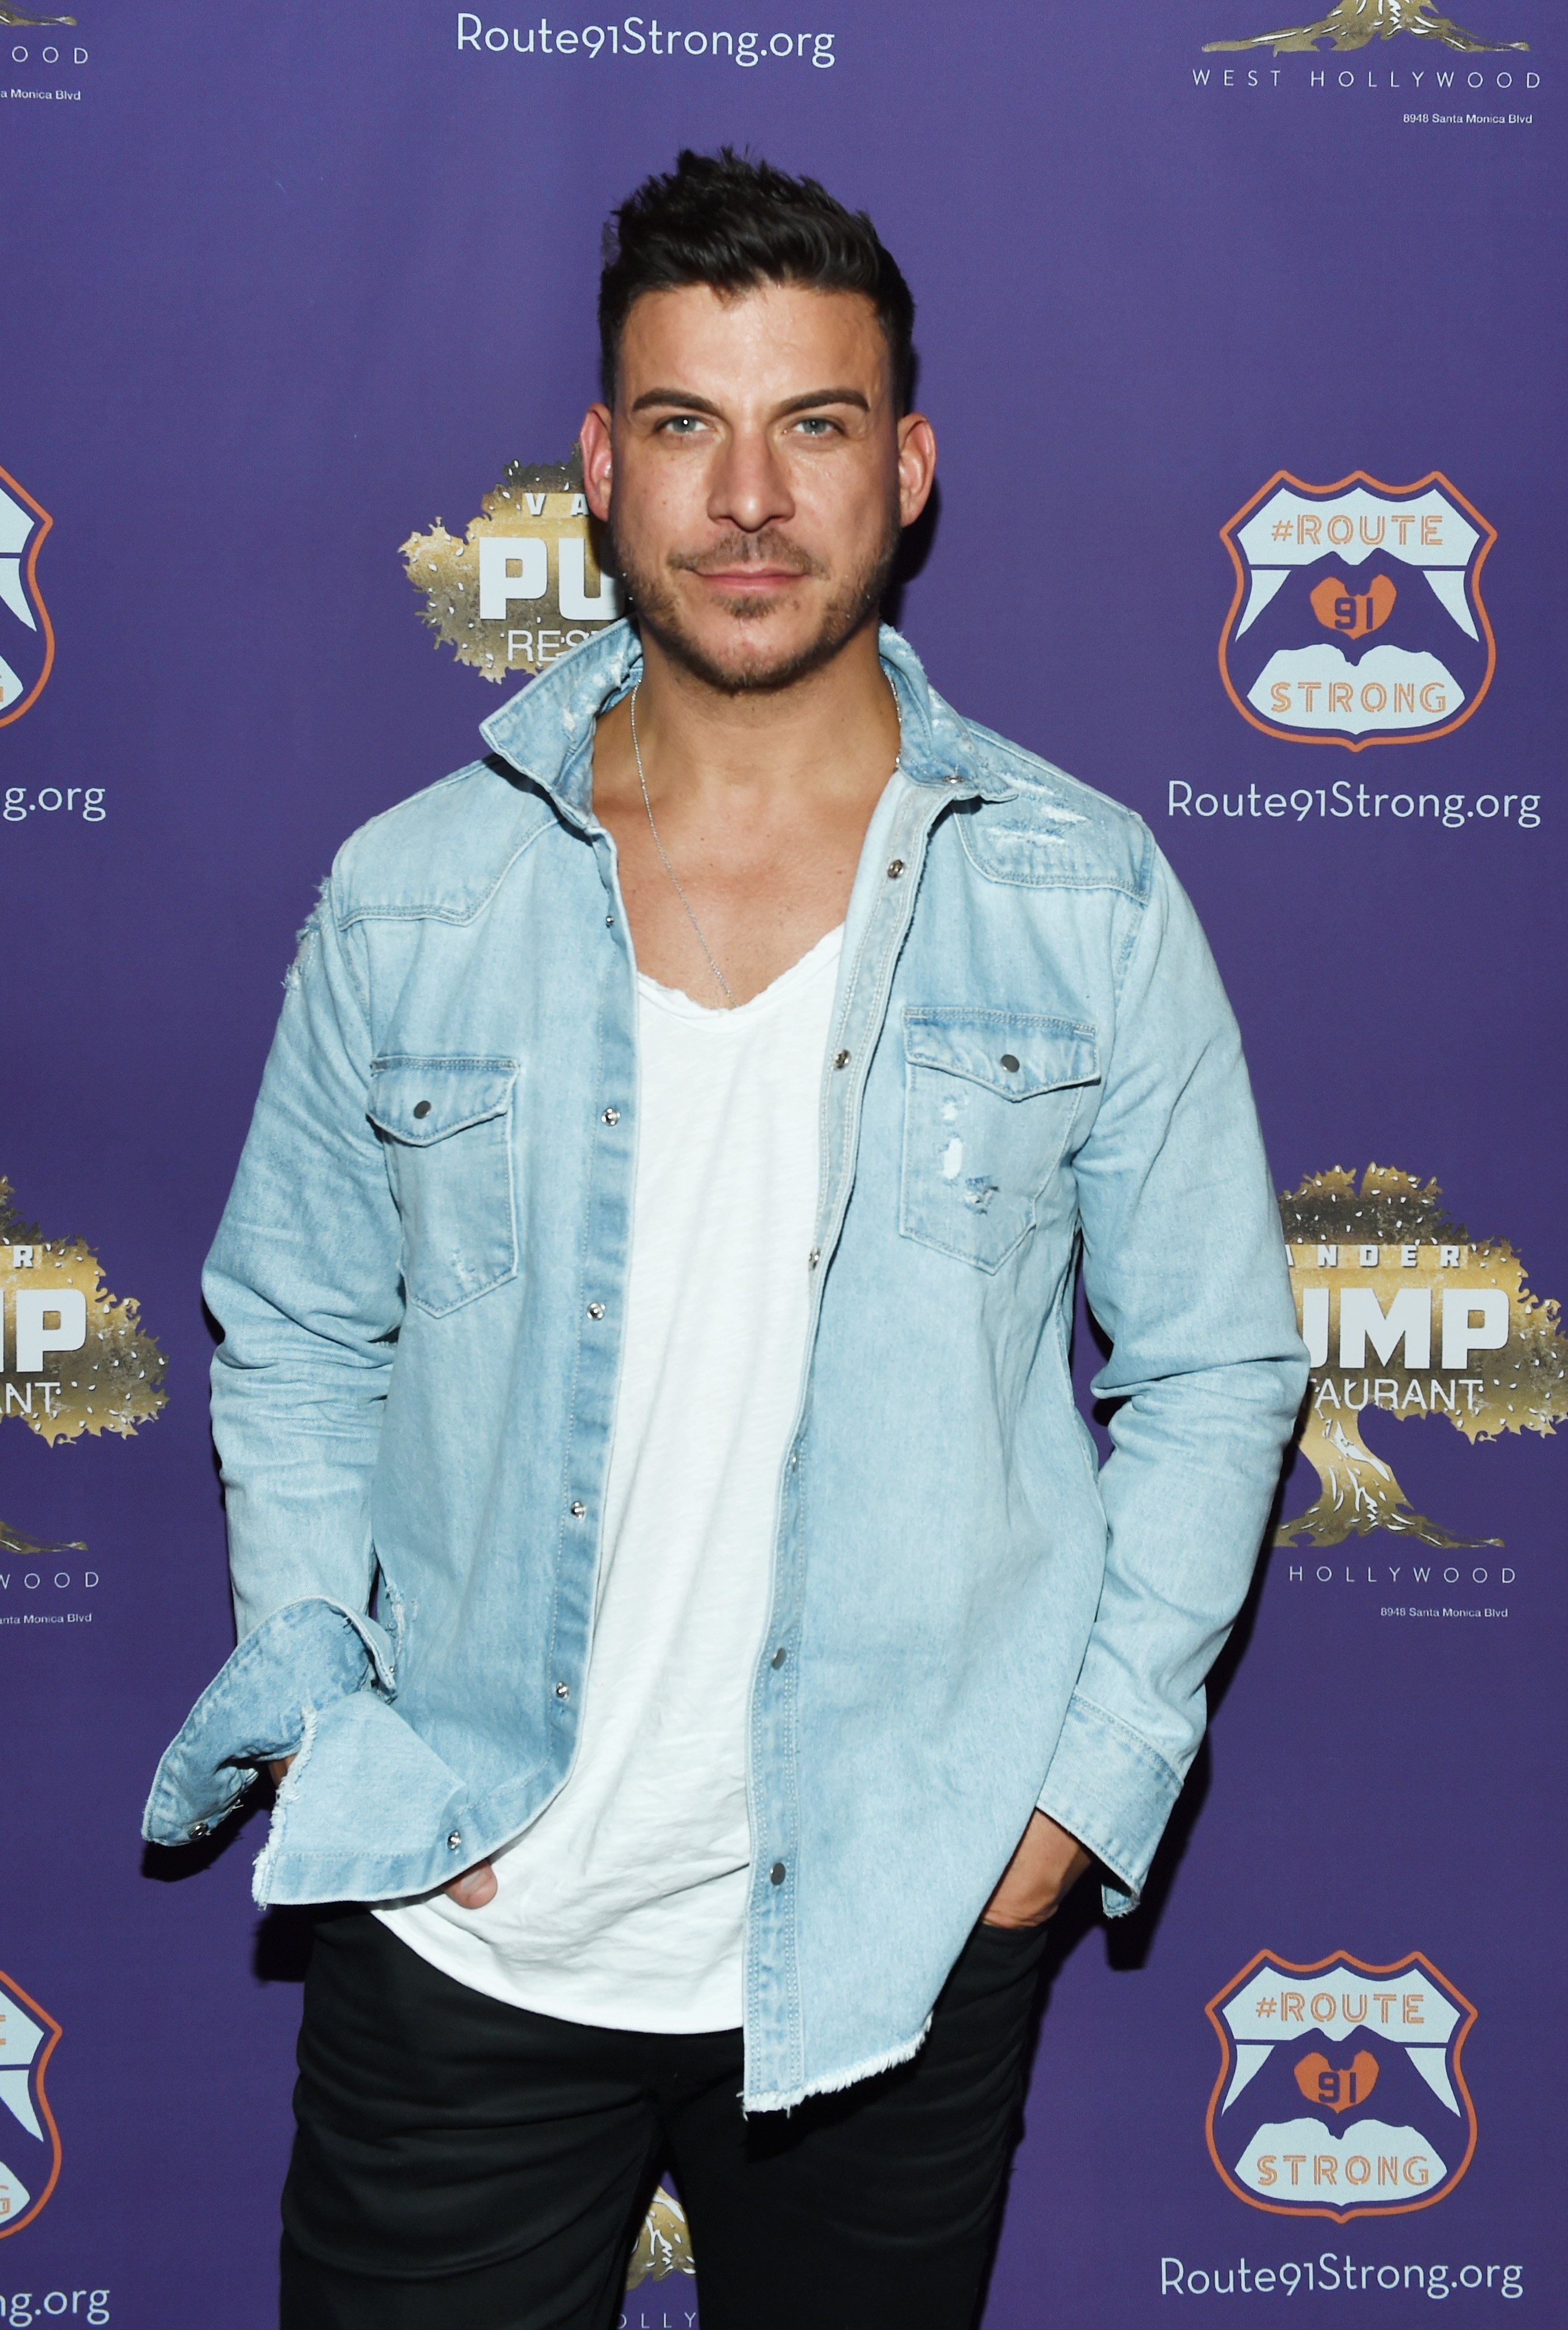 Television personality Jax Taylor attends the 1st annniversary fundraiser for the victims of the October 1st, 2017 Las Vegas Shooting hosted by Lisa Vanderpump and Route91Strong at Pump on October 1, 2018 in West Hollywood, California | Photo: Getty Images